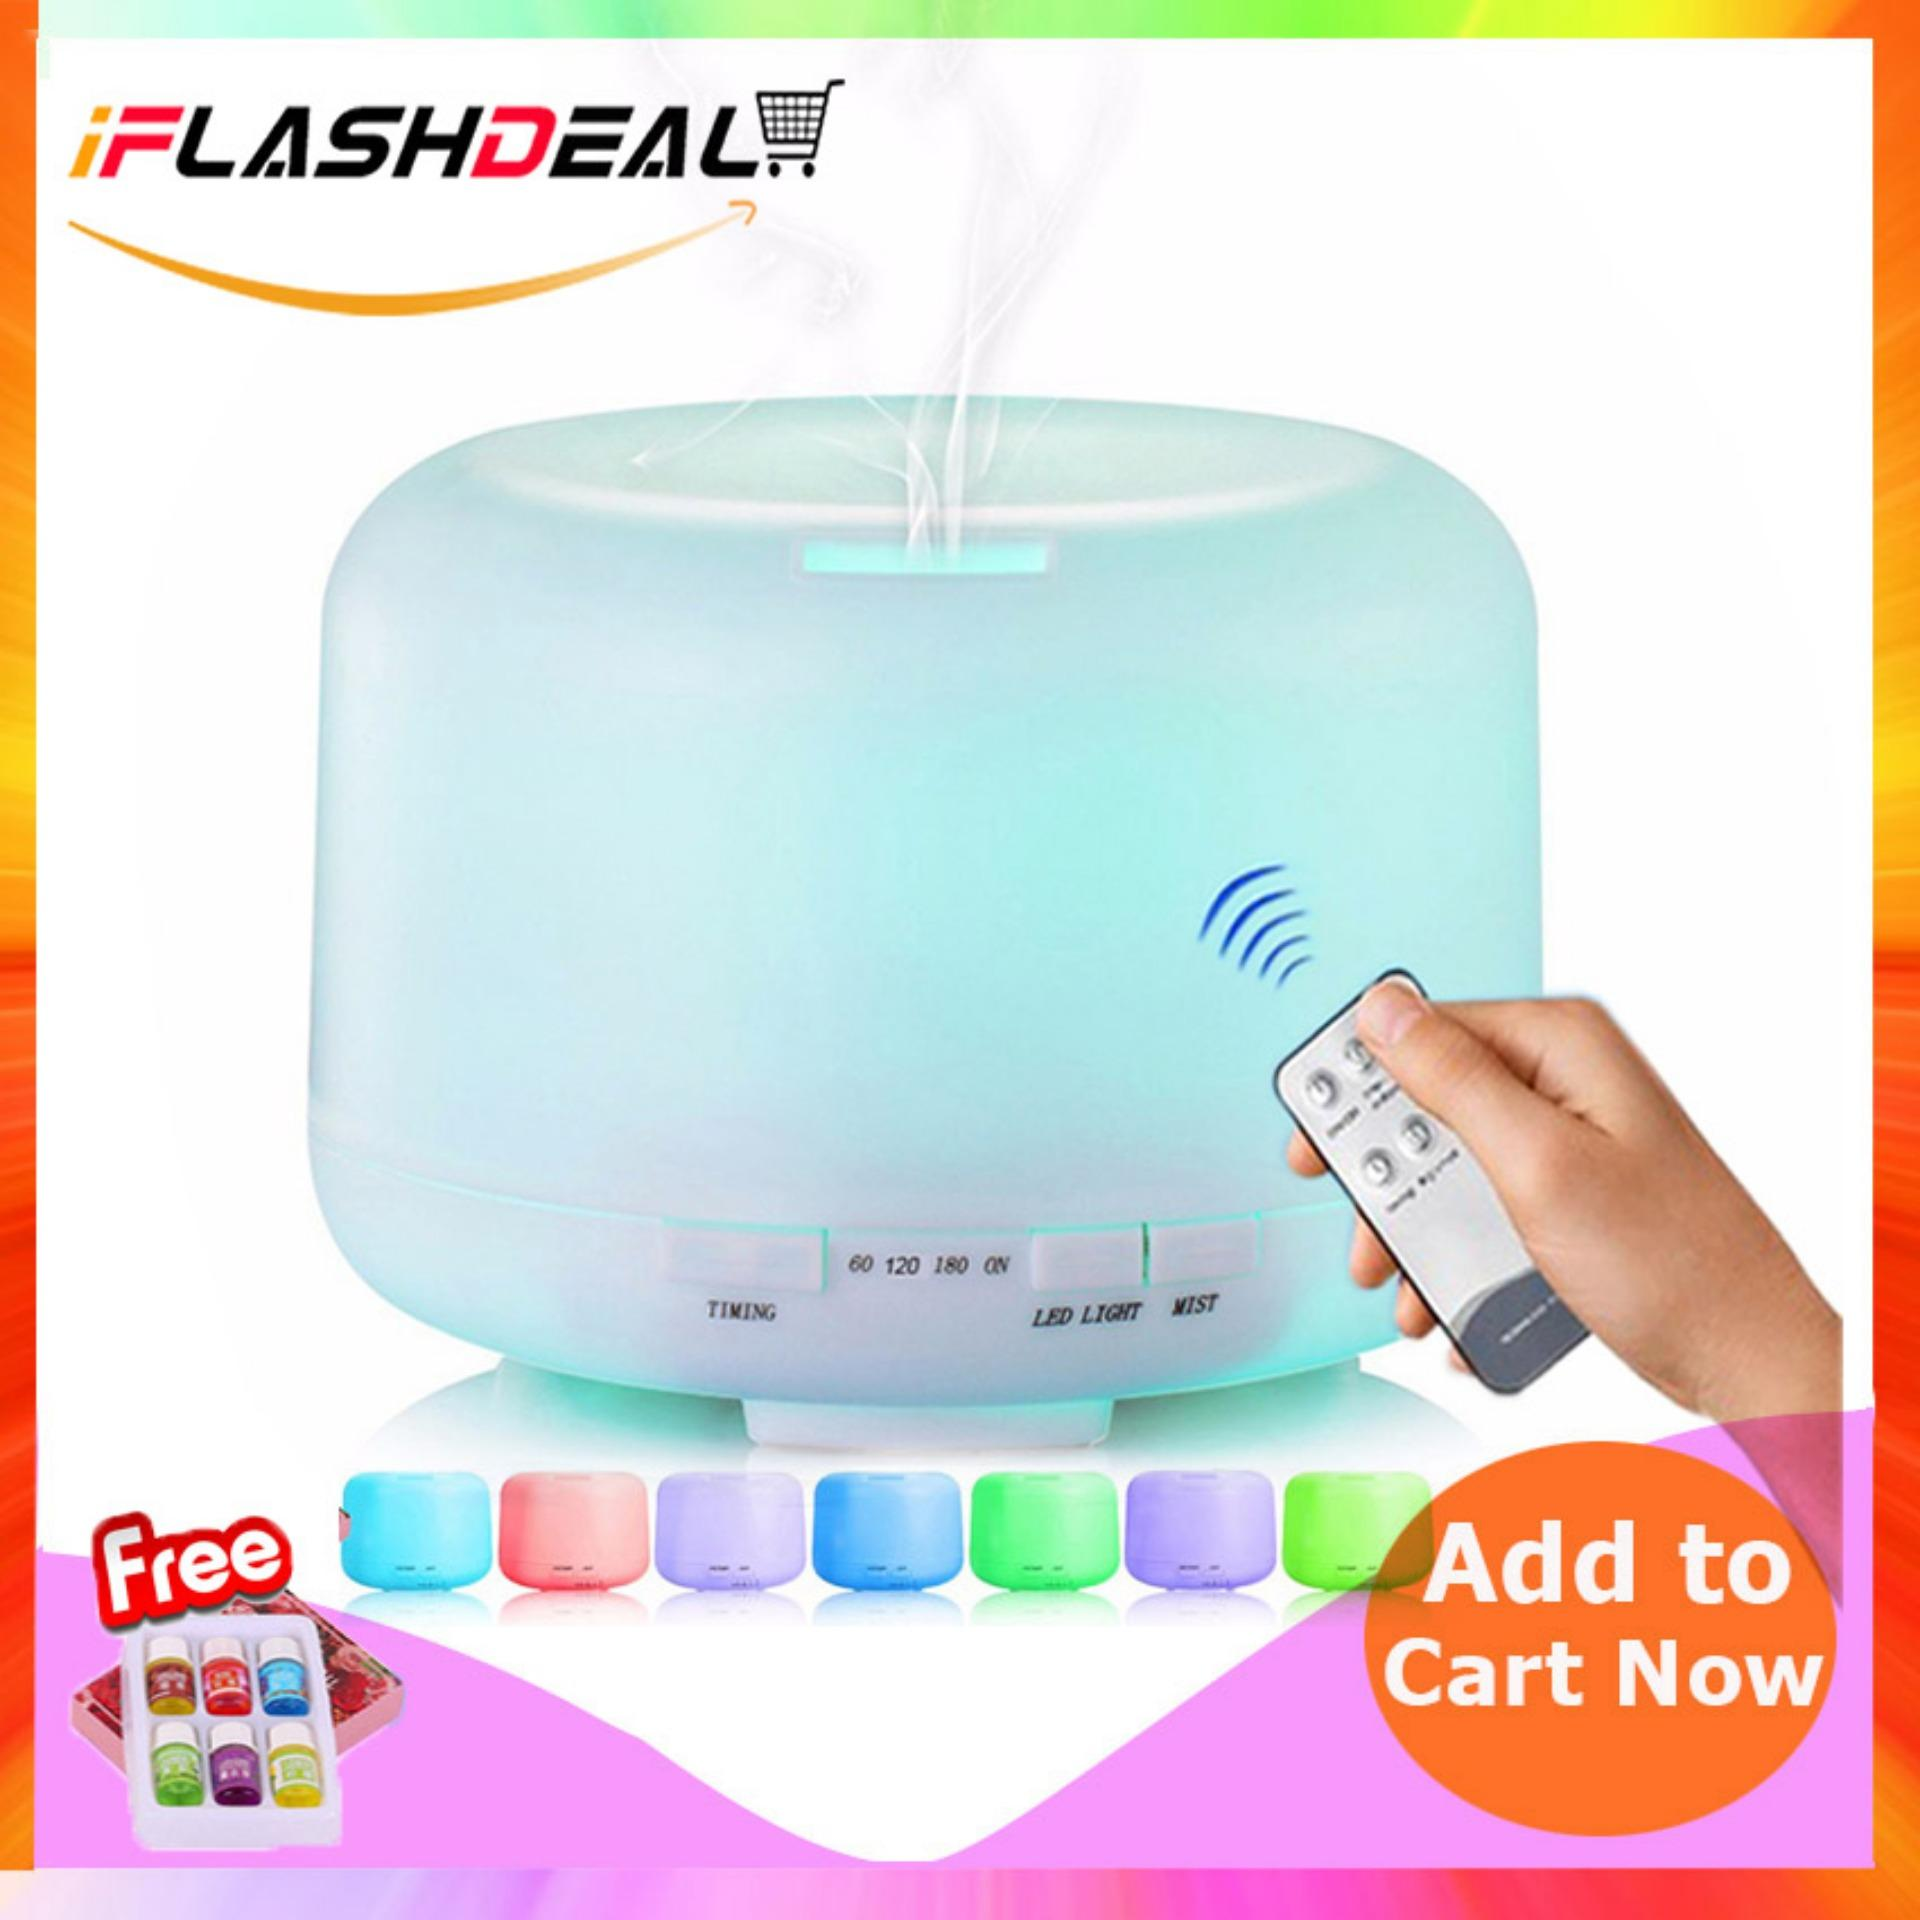 Iflashdeal Pembersih Udara Ultrasonic Aroma Diffuser Air Humidifiers Aromatherapy Essential Oil Diffuser Air Purifier Cool Mist Quite Design For Home Office Room 500ml Remote Control By Iflashdeal.